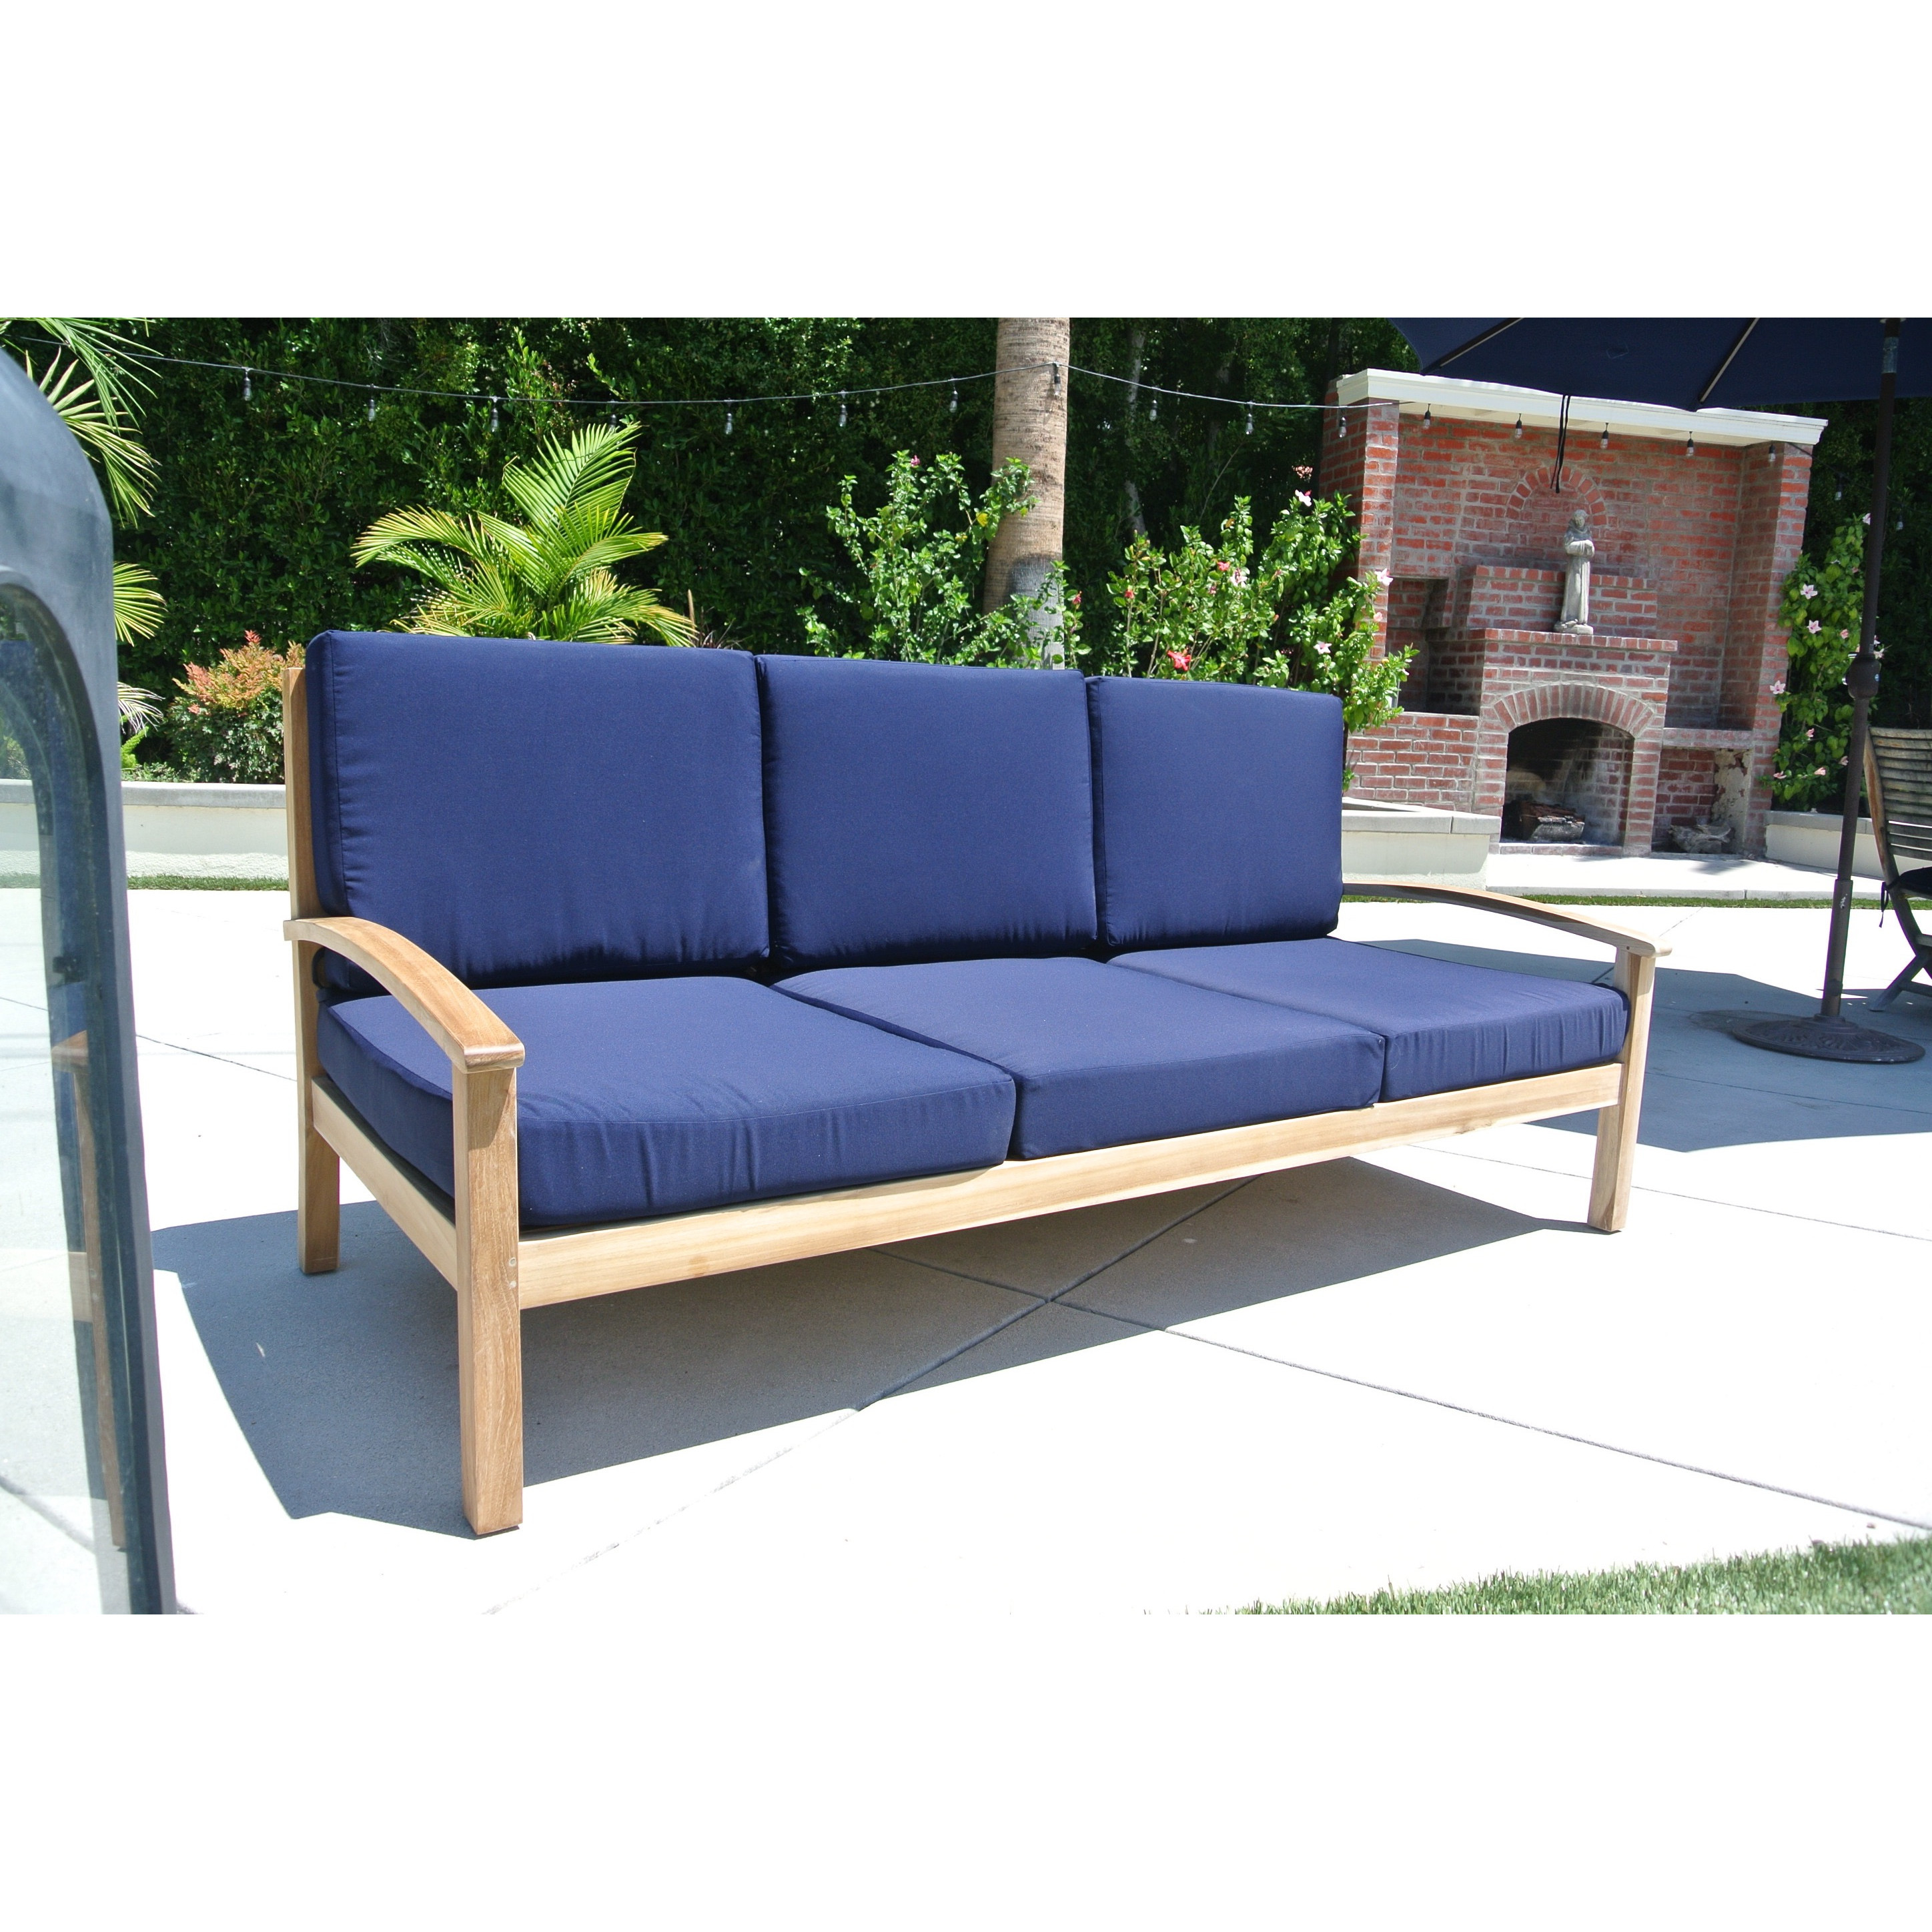 Best ideas about Sunbrella Outdoor Furniture . Save or Pin Willow Creek Designs Outdoor Sunbrella Lounge Chair Now.